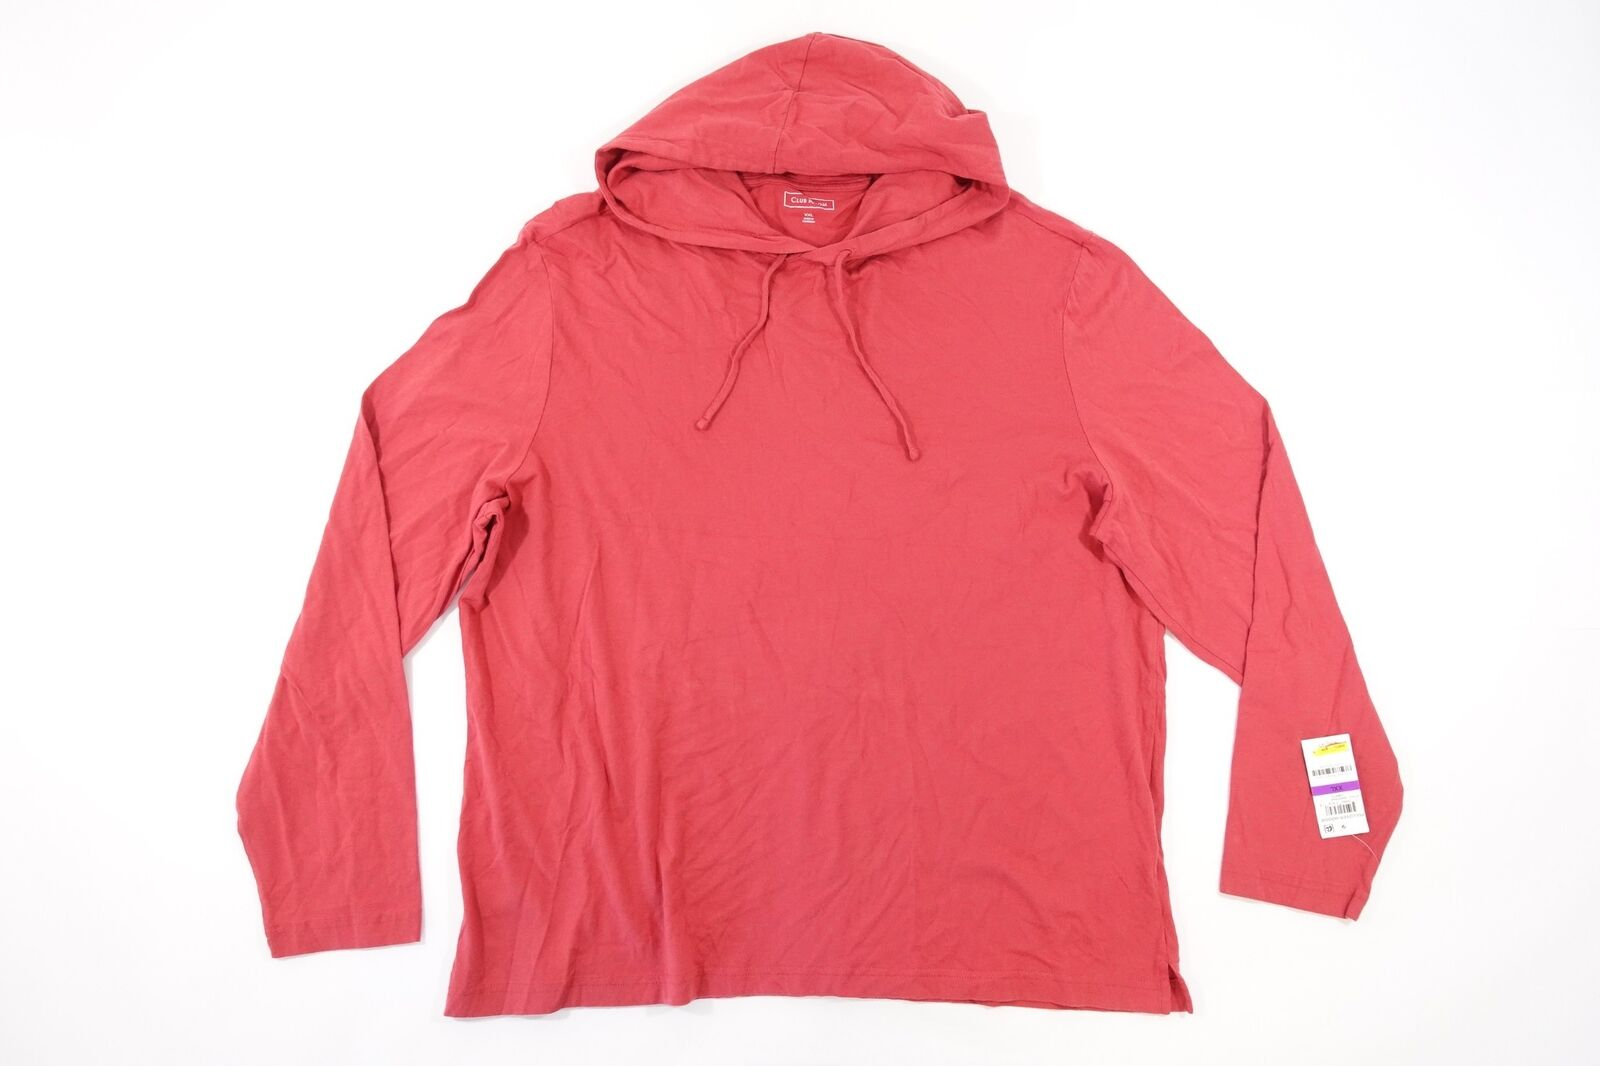 CLUB ROOM PALE RED 2XL LIGHT HOODIE SWEATER MENS NWT NEW